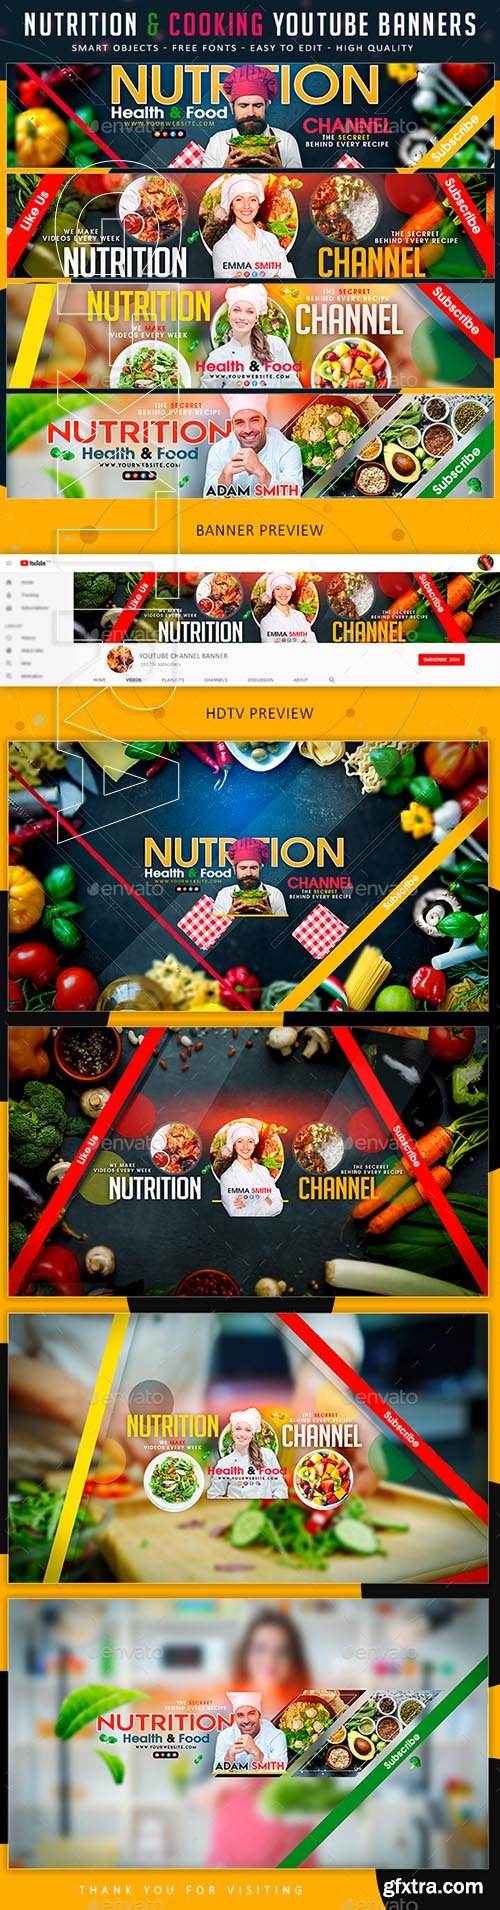 GraphicRiver - Nutrition & Cooking YouTube Banner 21925512